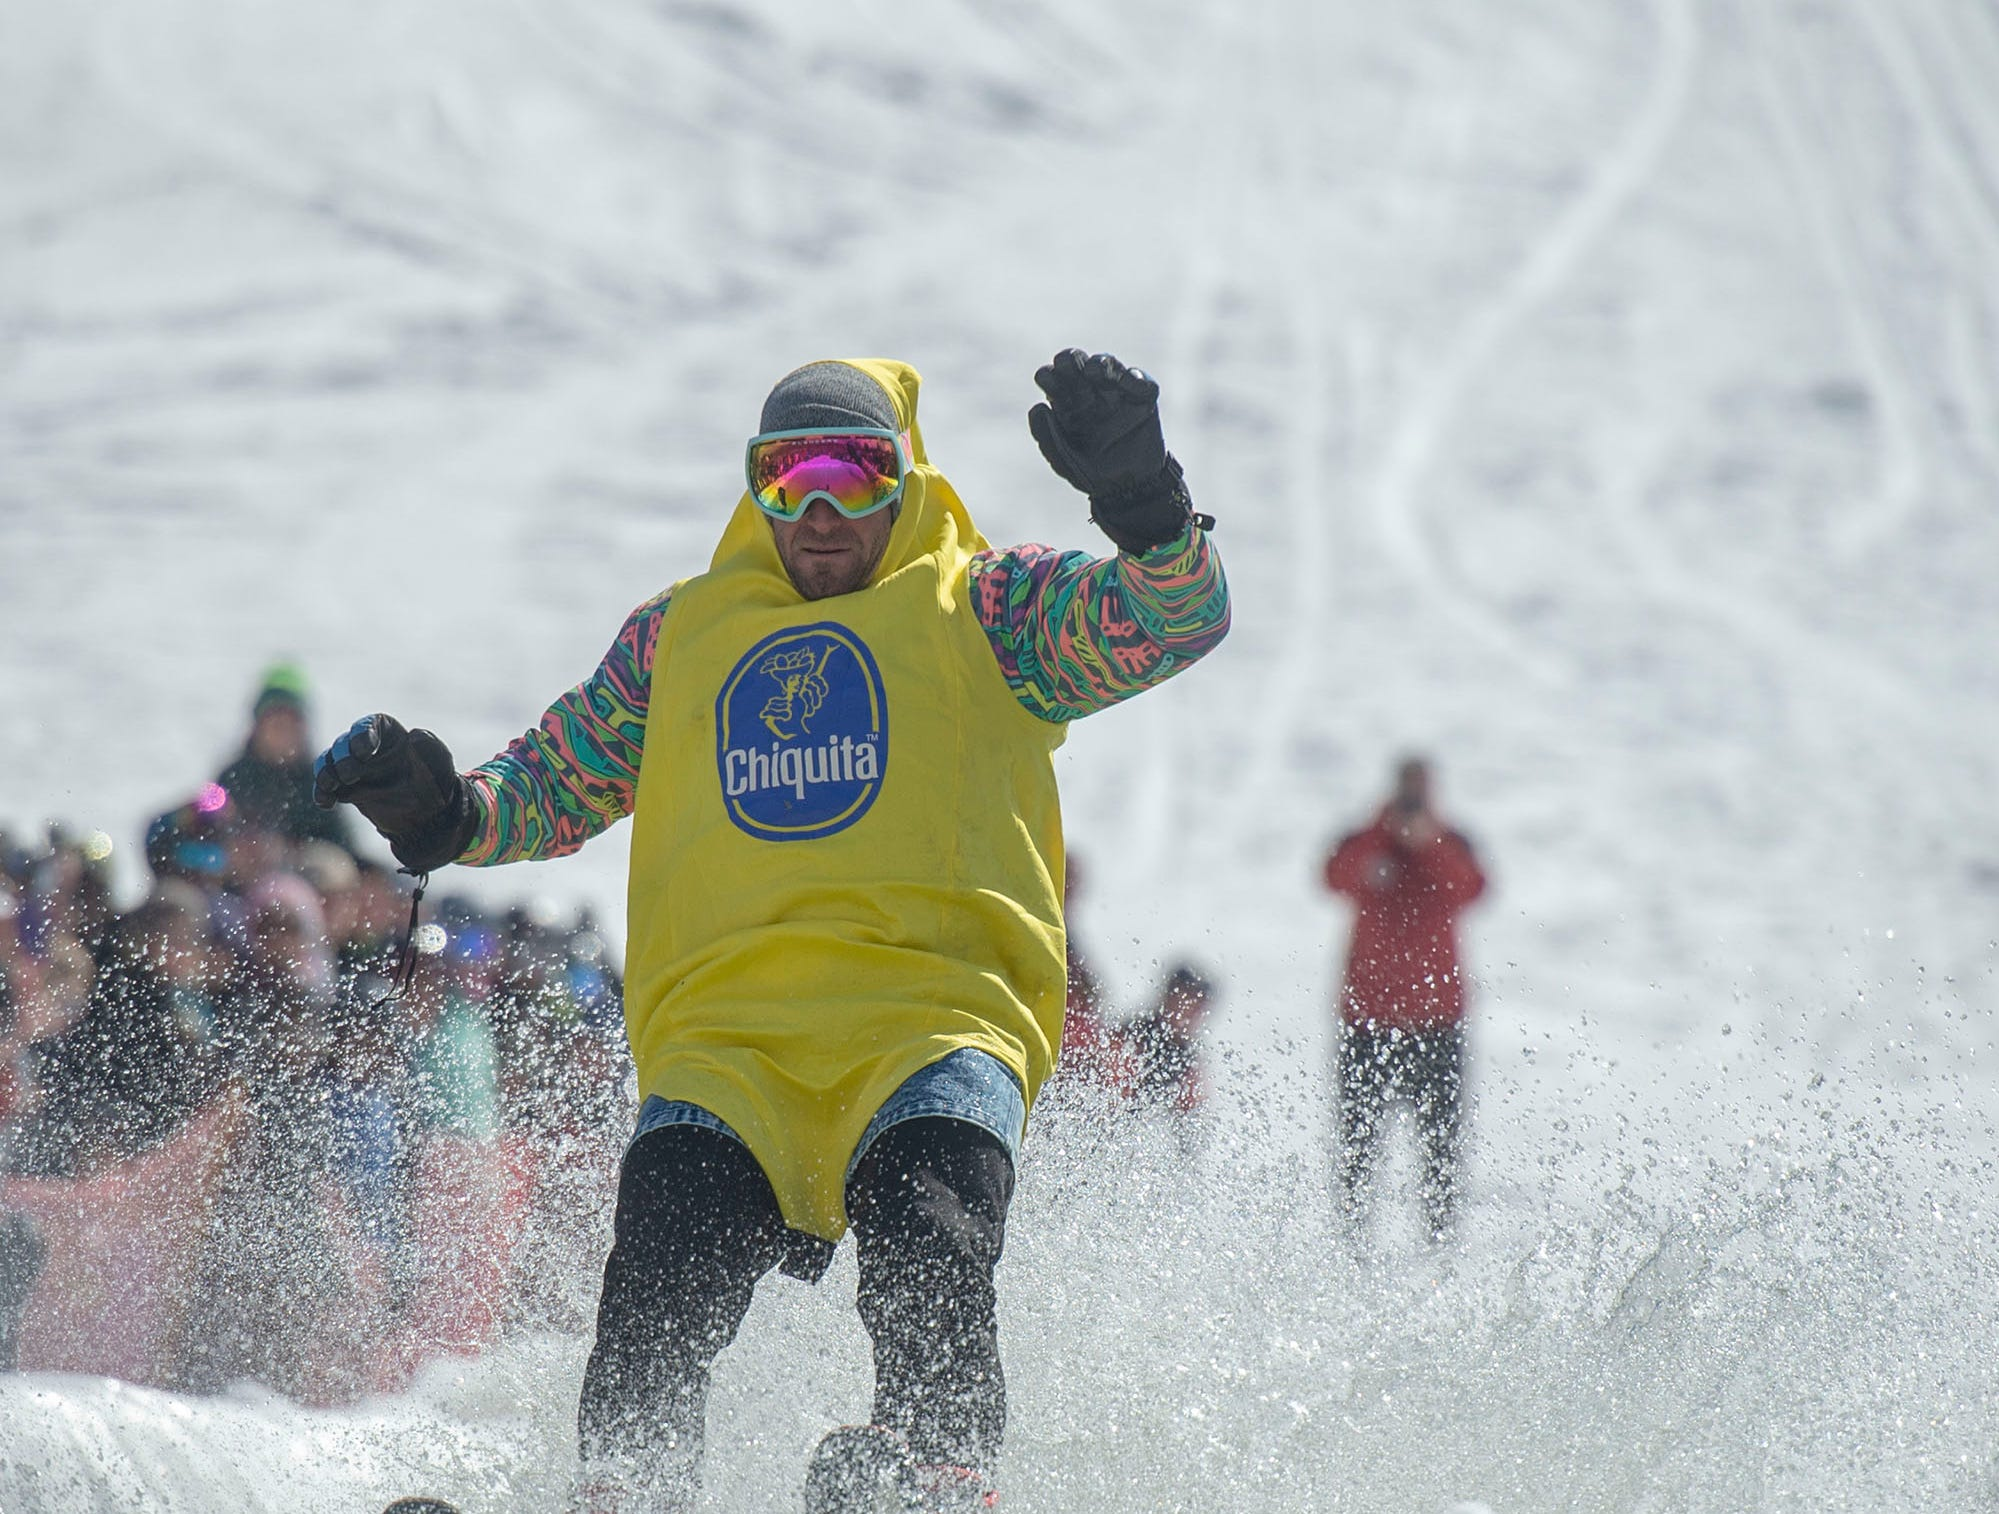 A participant wears a banana costume to successfully skim the pond at Roundtop Mountain Resort on Saturday, March 16, 2019.